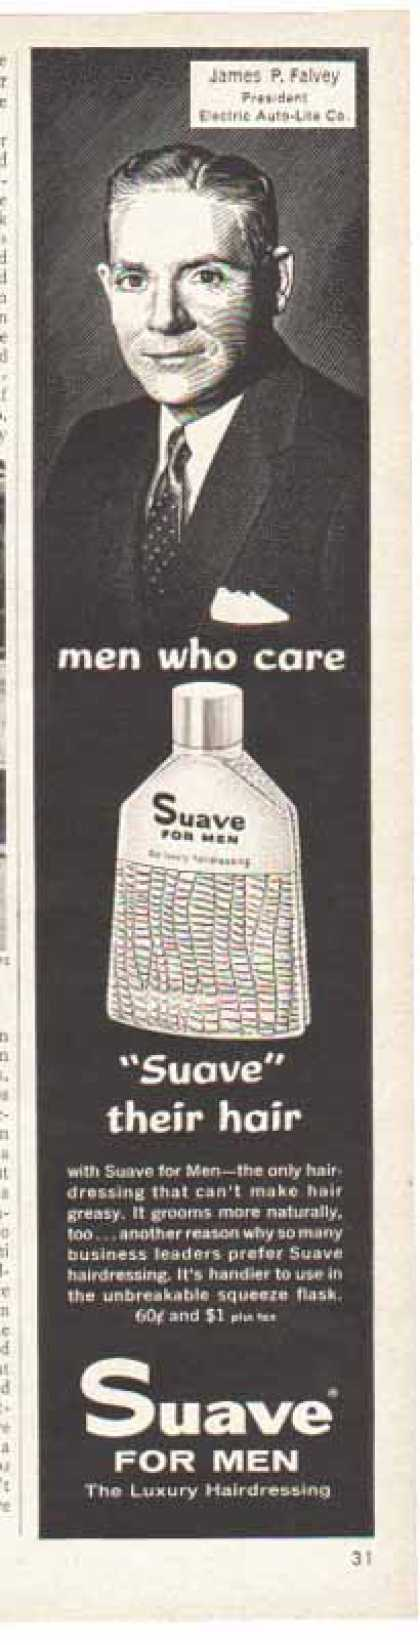 Suave – James P. Falvey of Electric Auto Lite (1958)